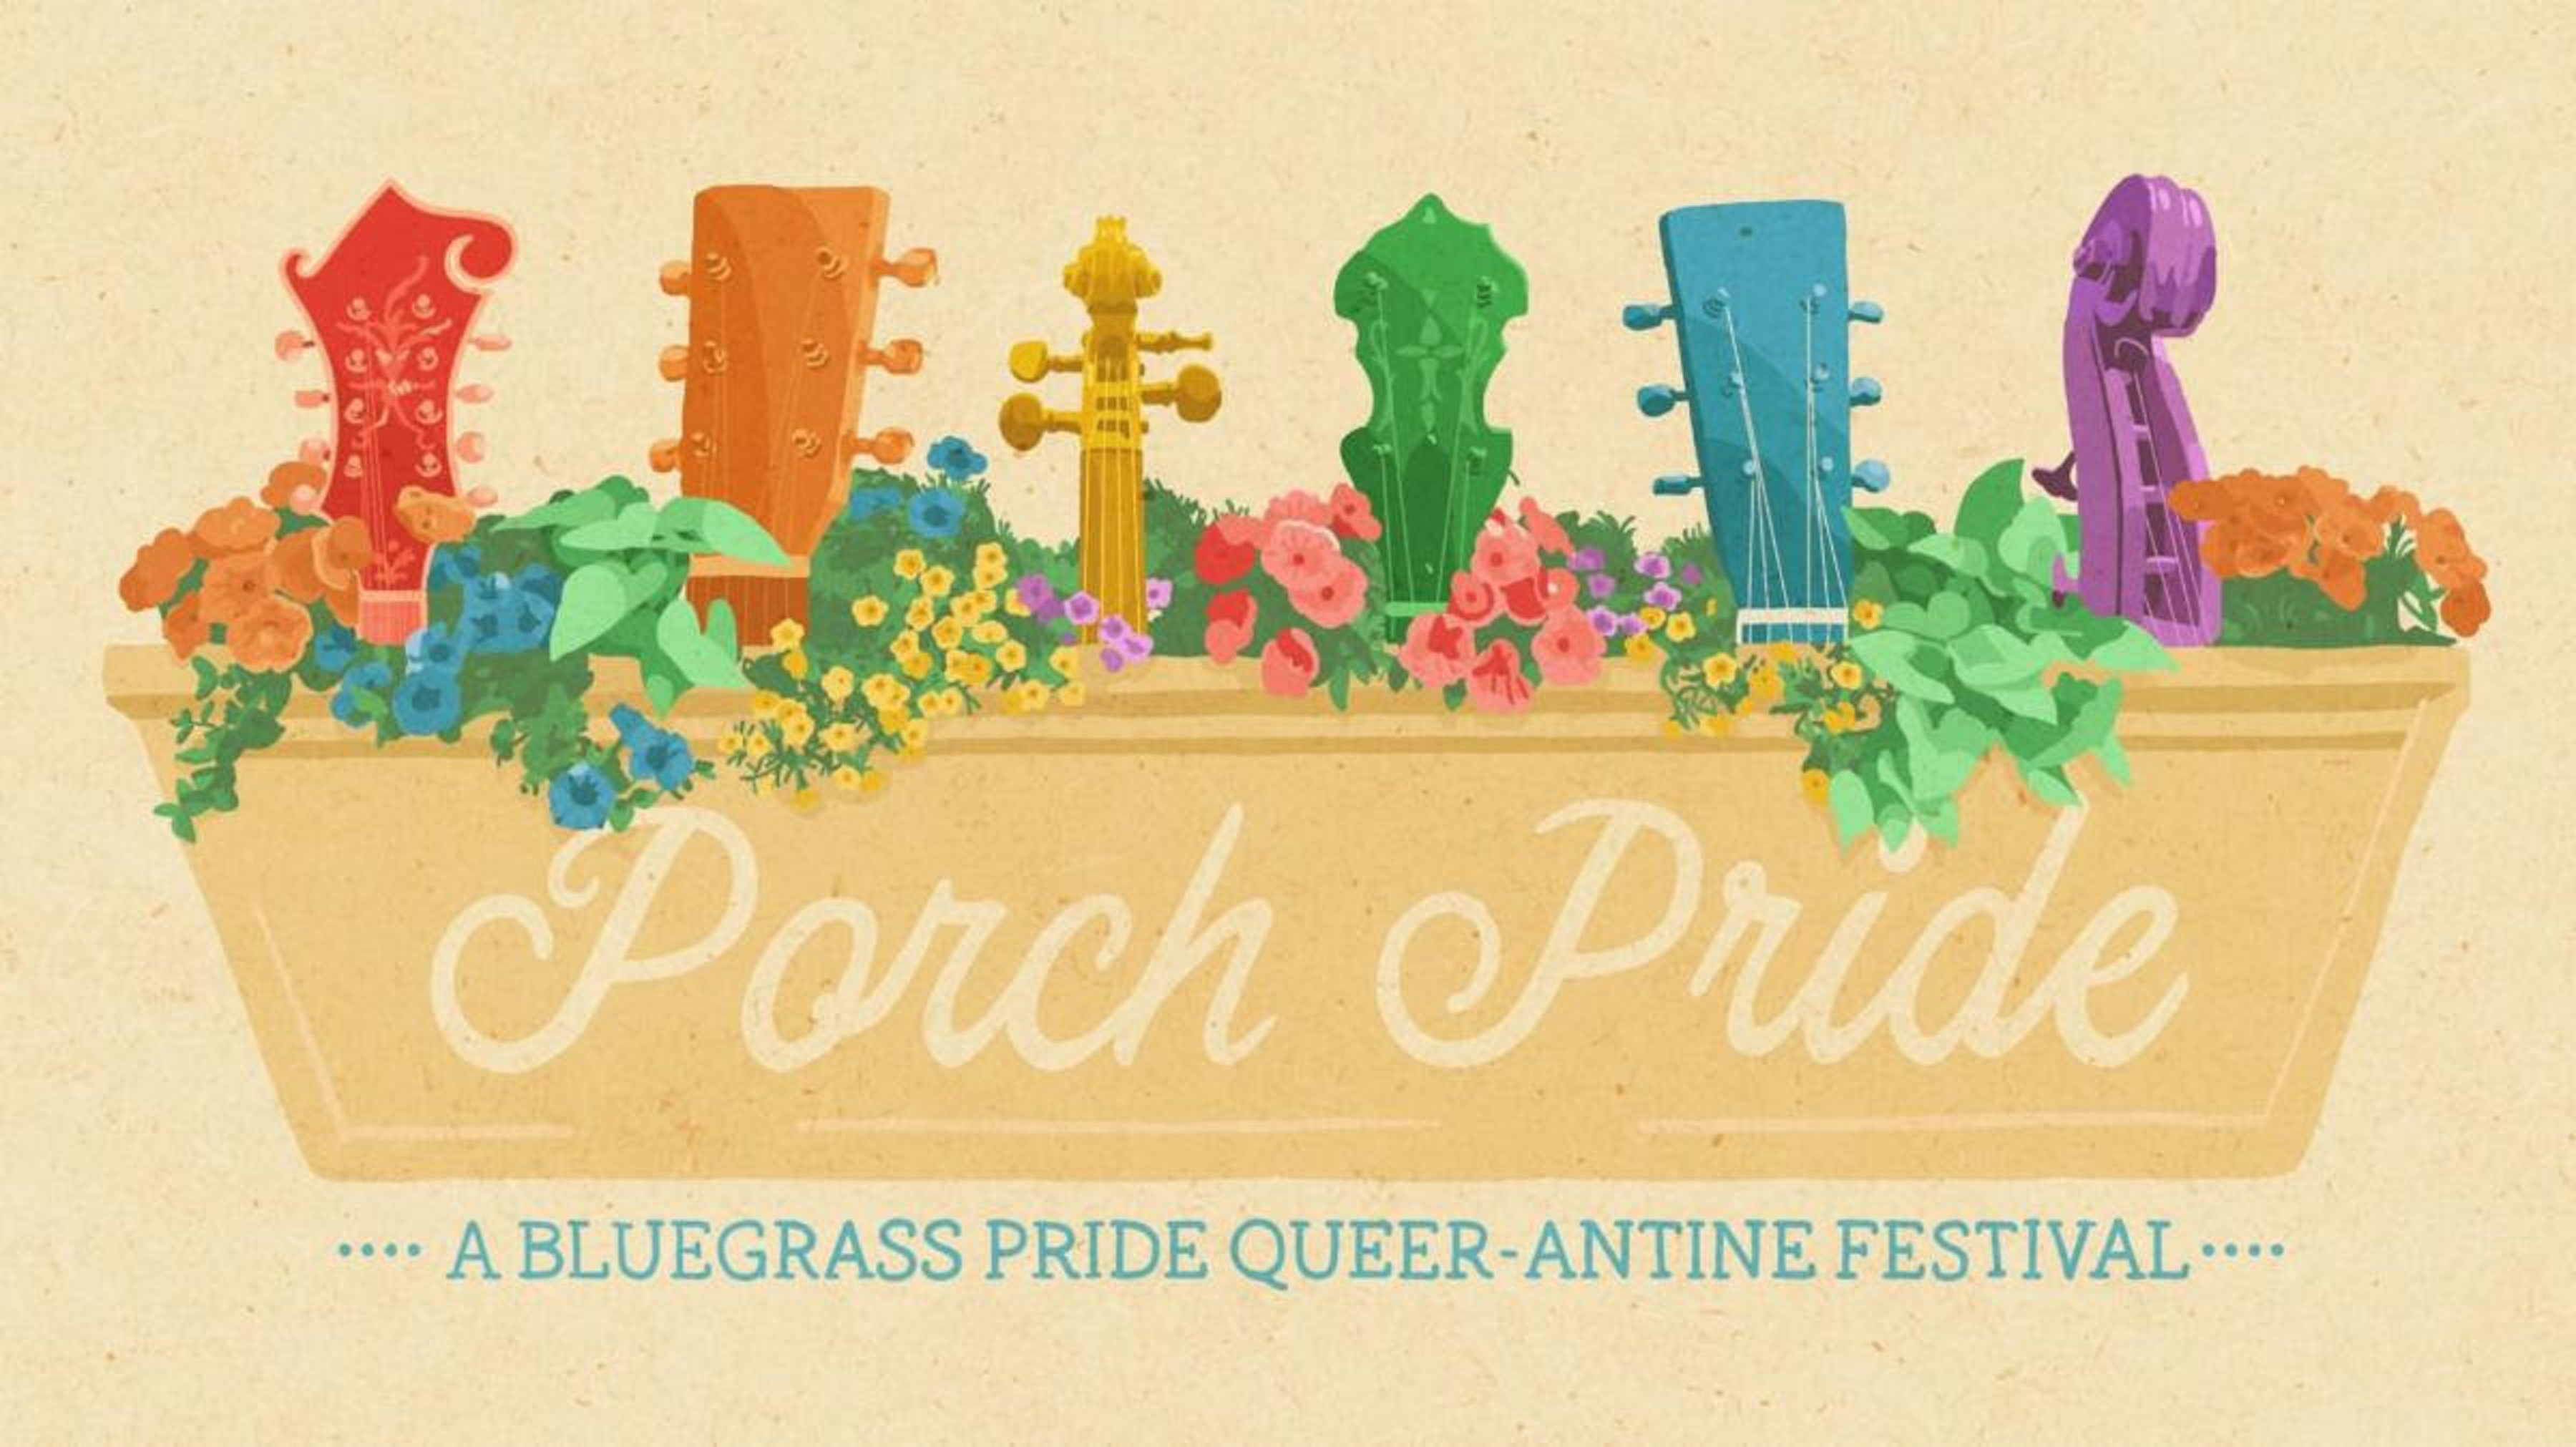 Porch Pride: A Bluegrass Pride Queer-antine Festival, June 27th and 28th